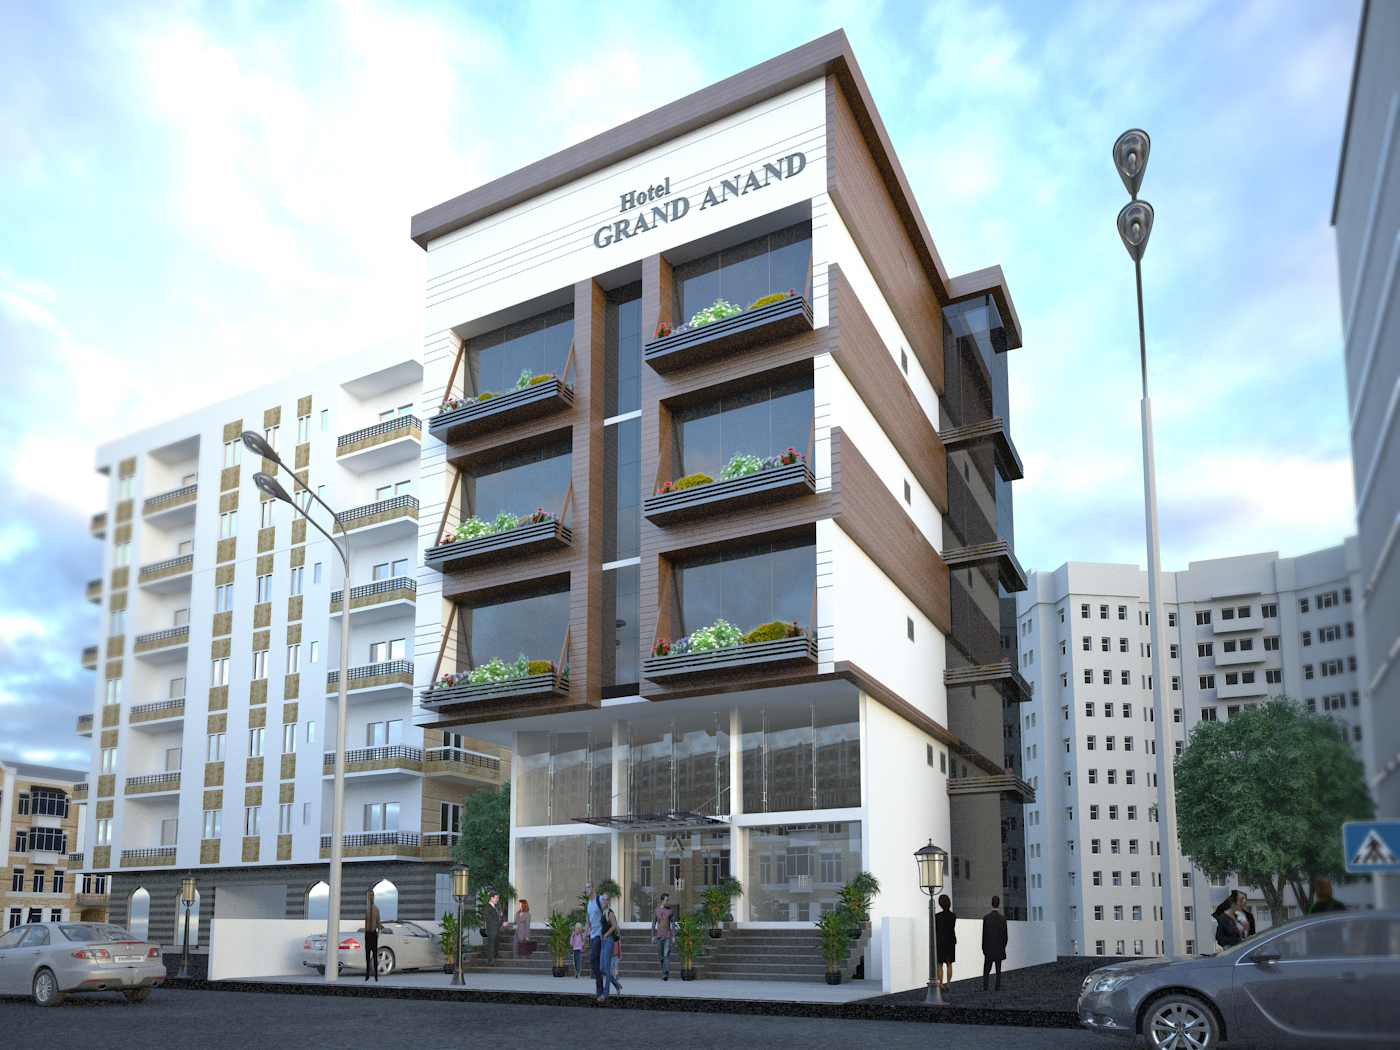 Hotel grand anand exterior design shyam clement for Hotel interior and exterior design